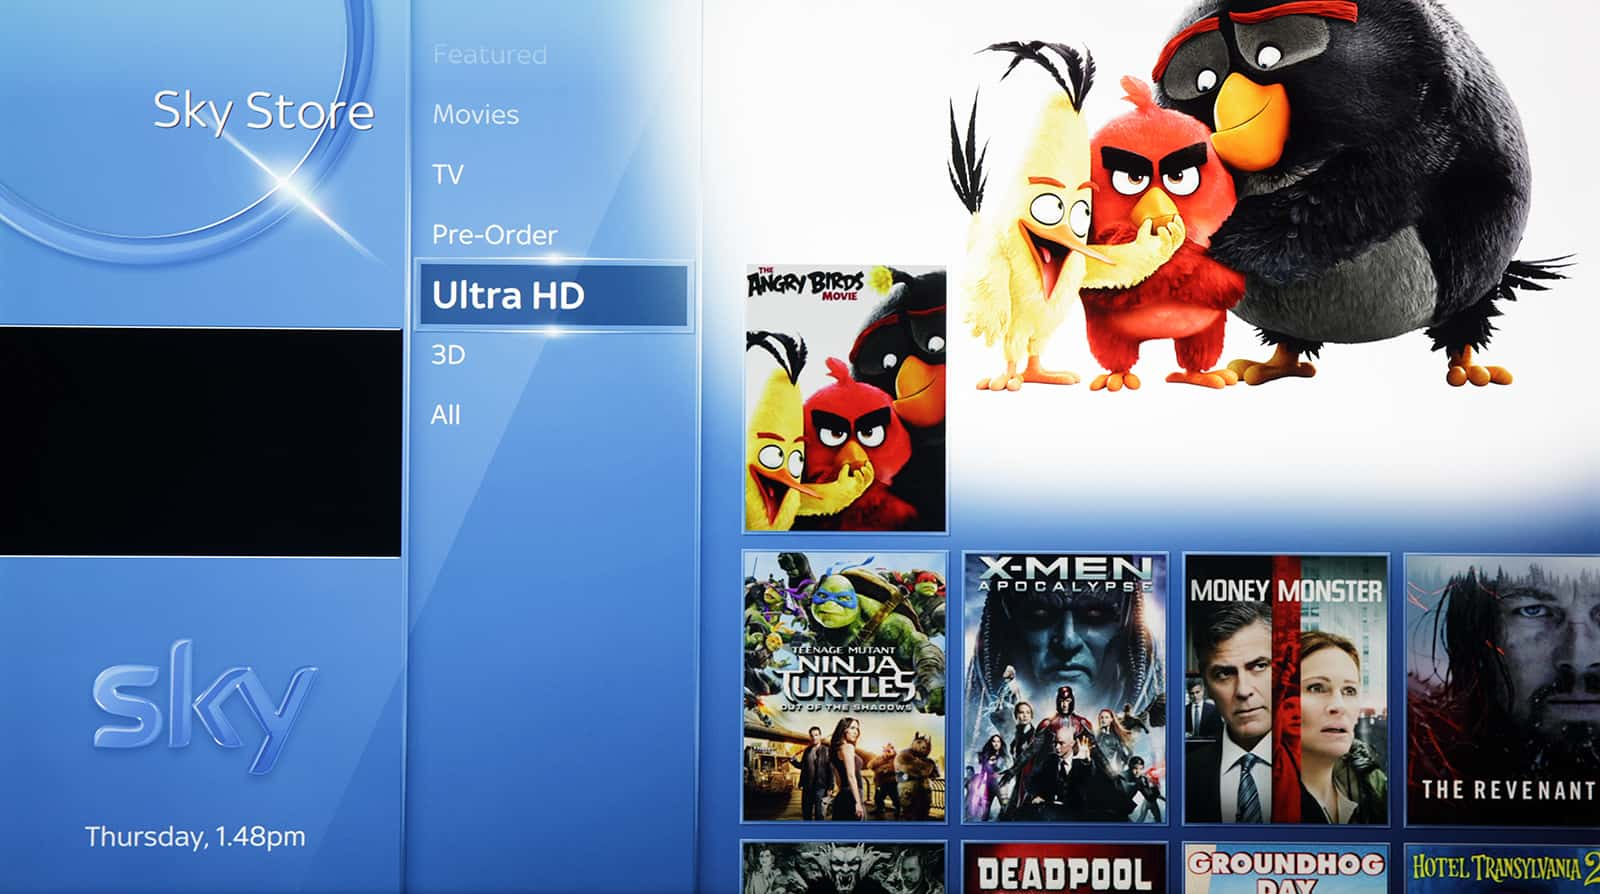 Sky Store ultra HD movies